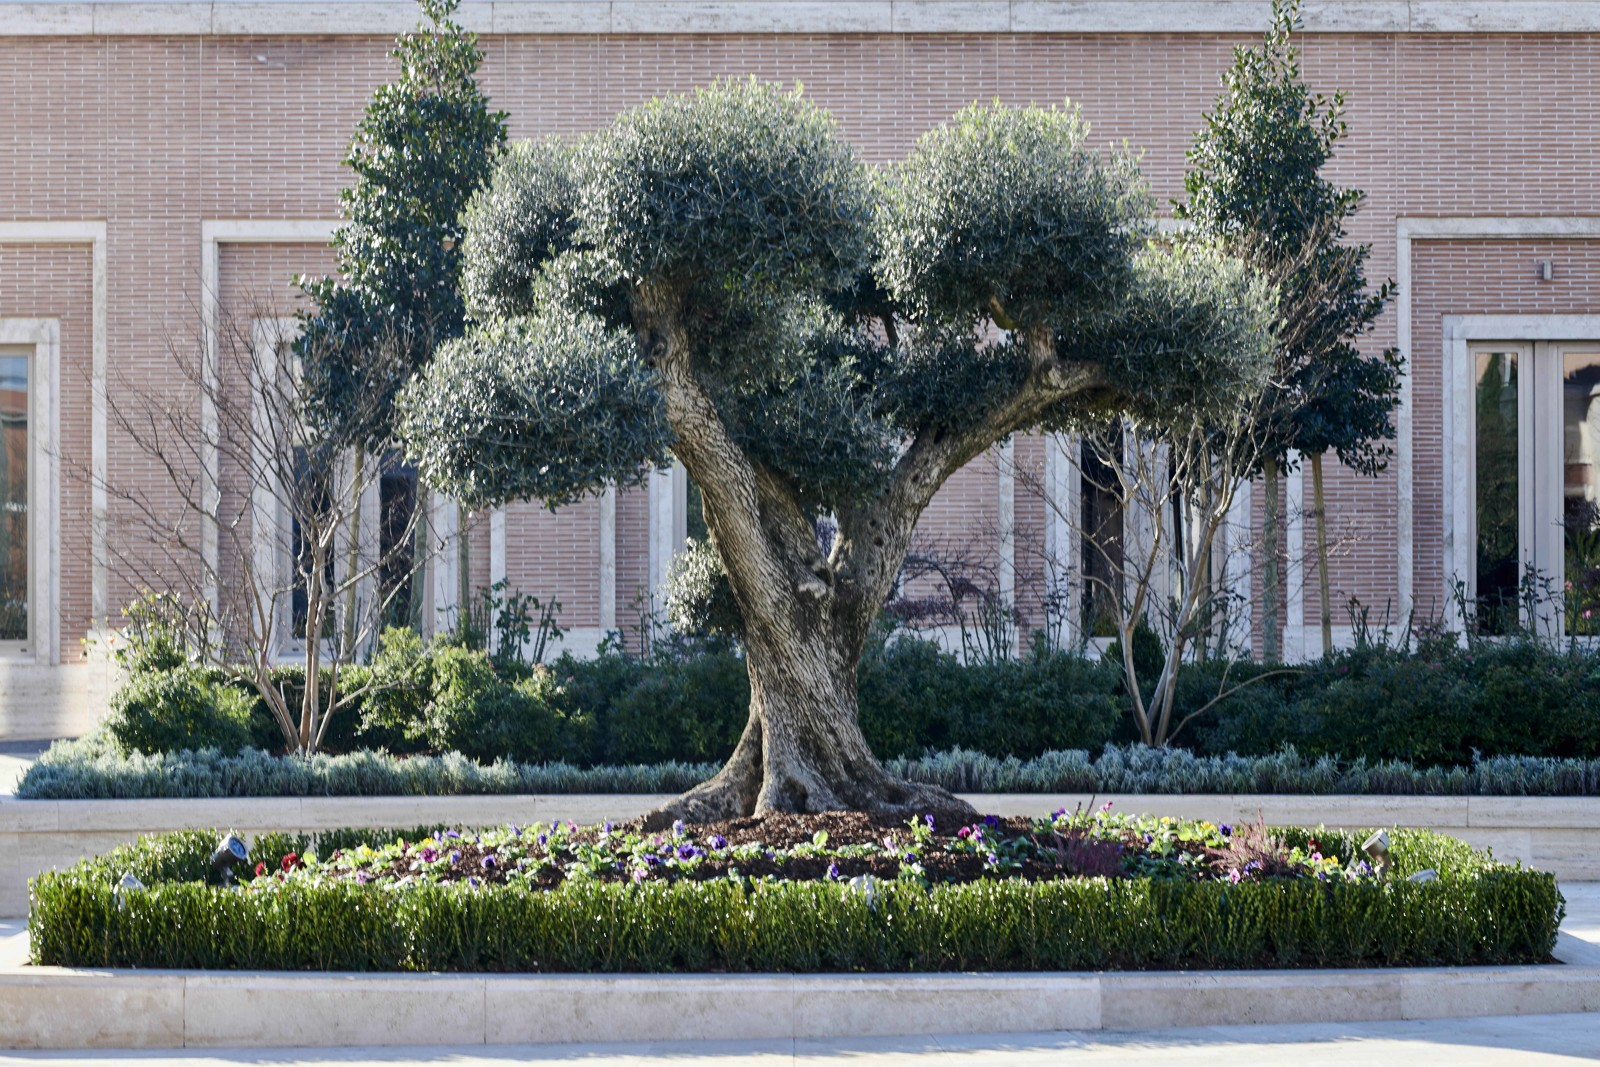 One of the olive trees found on the piazza of the Rome Italy Temple grounds.